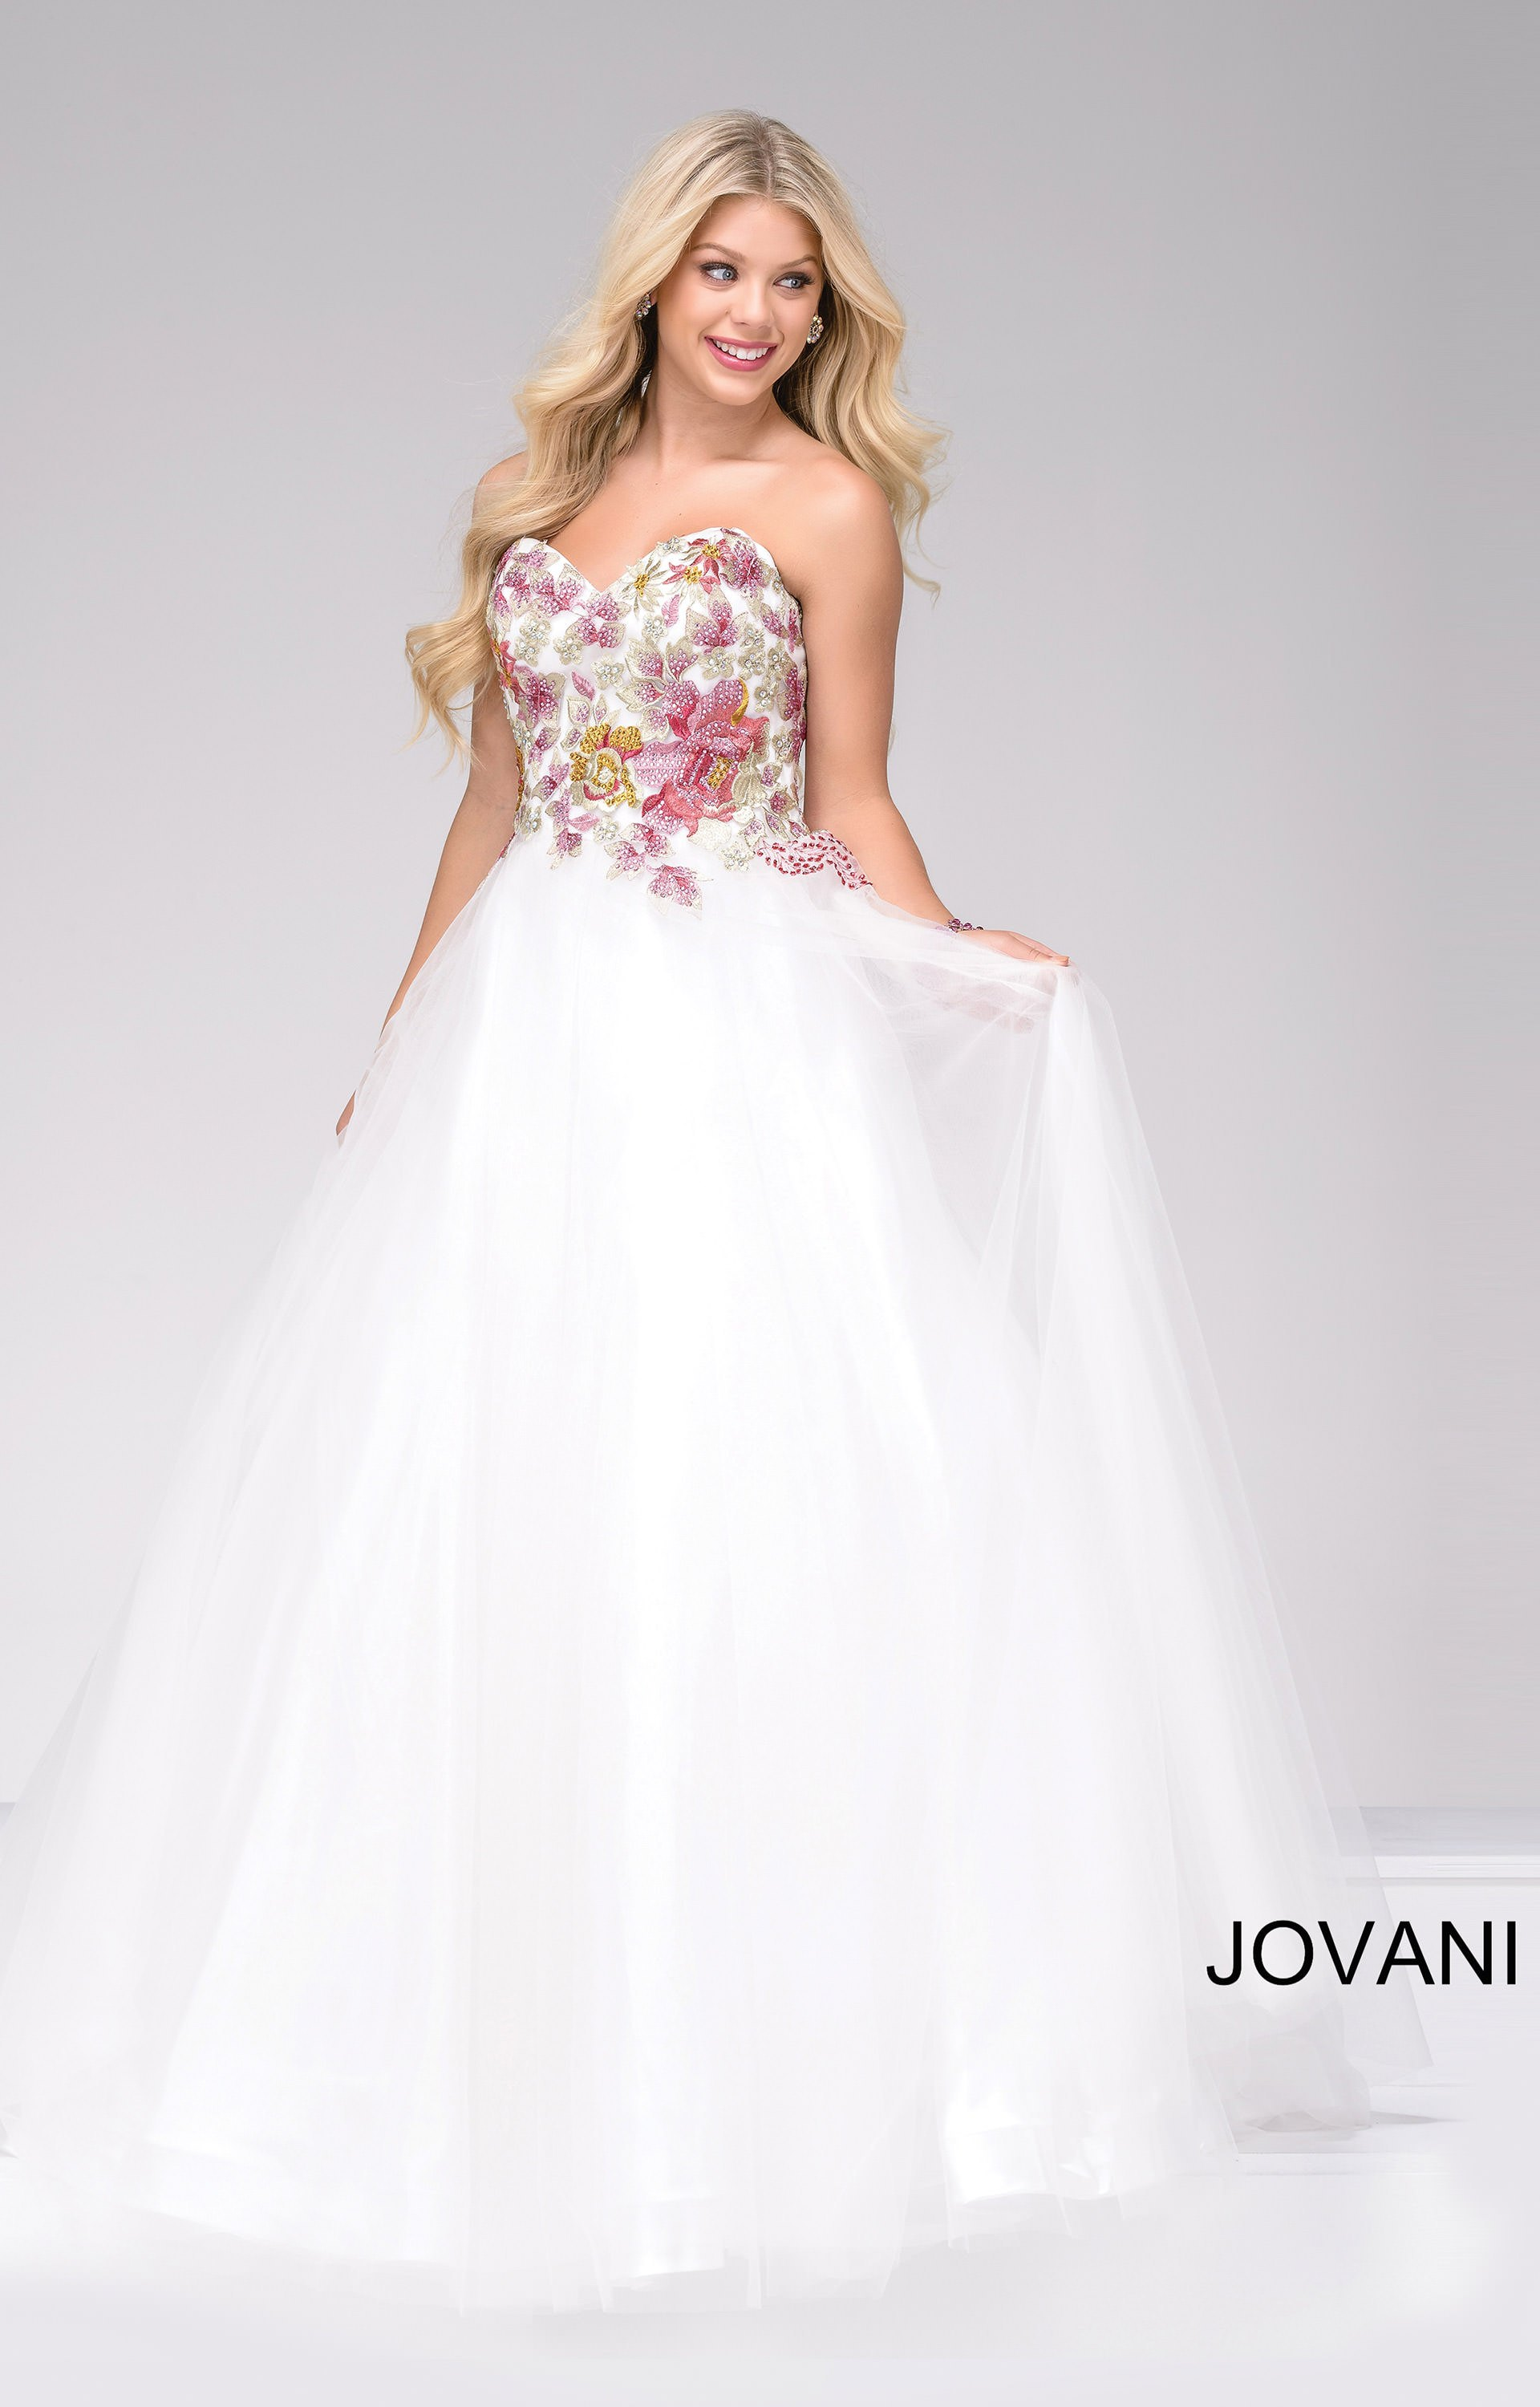 Jovani 49616 Strapless Embroidered Floral Ballgown Prom